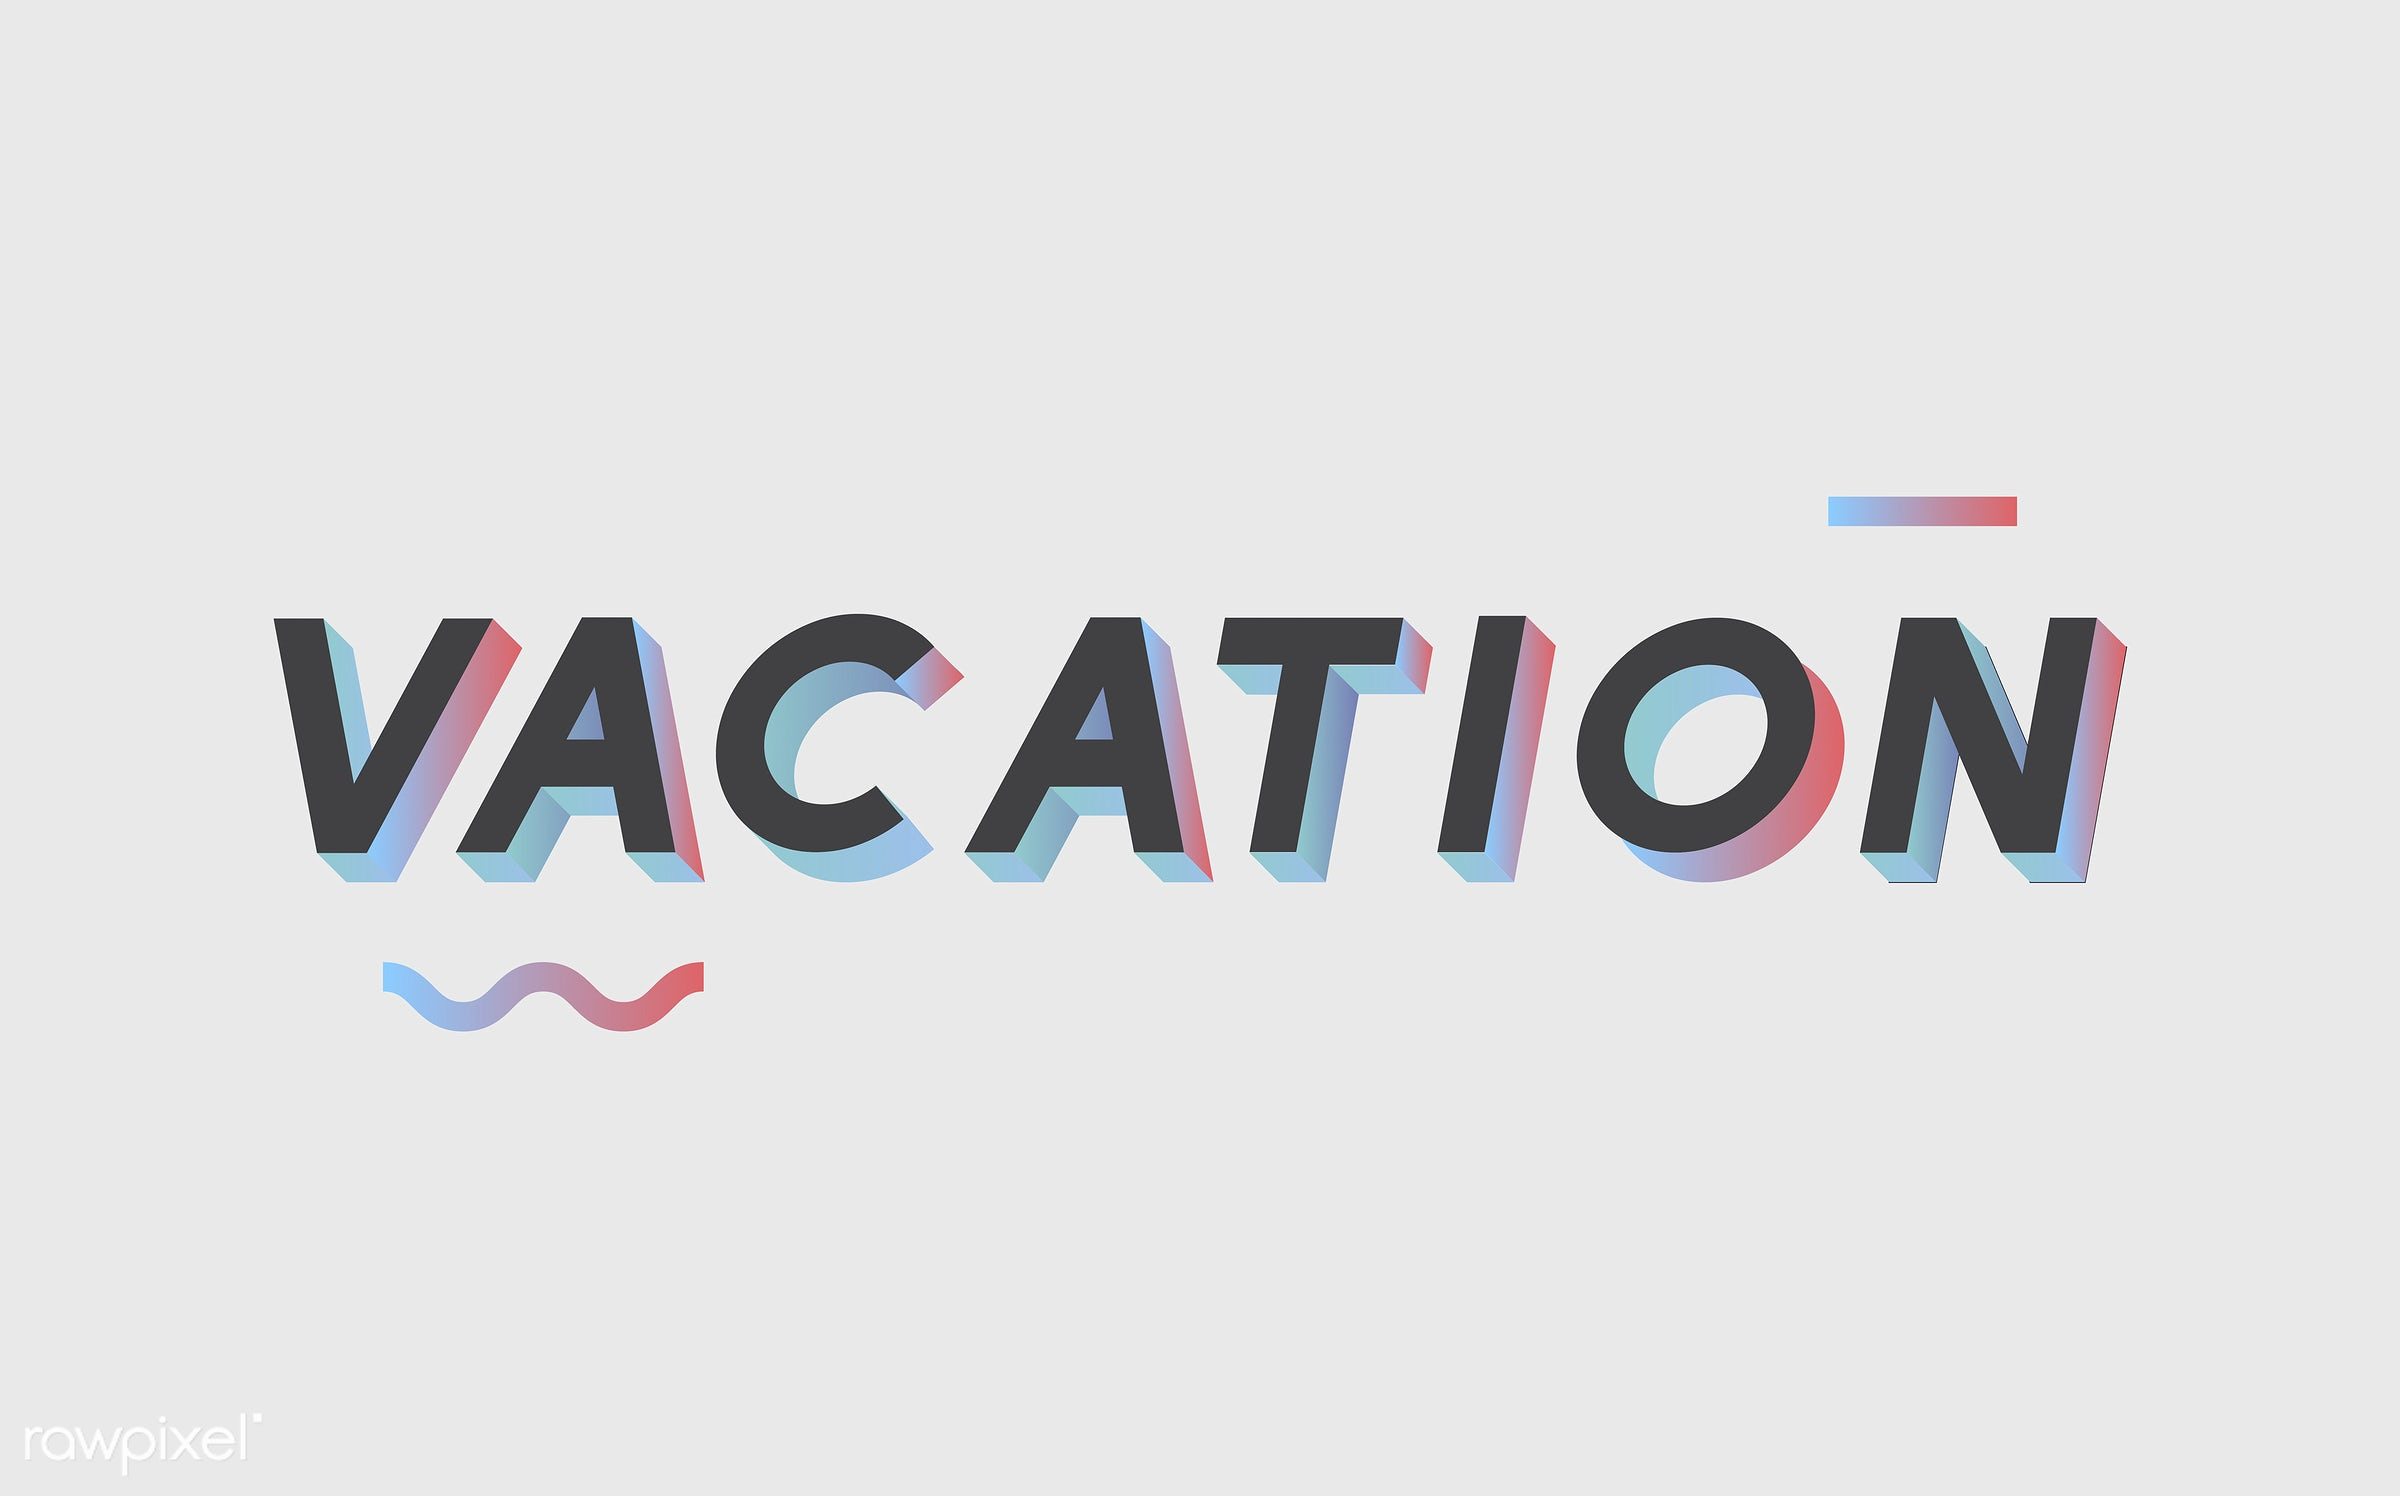 neon, colorful, 3d, three dimensional, vector, illustration, graphic, word, white, black, vacation, holiday